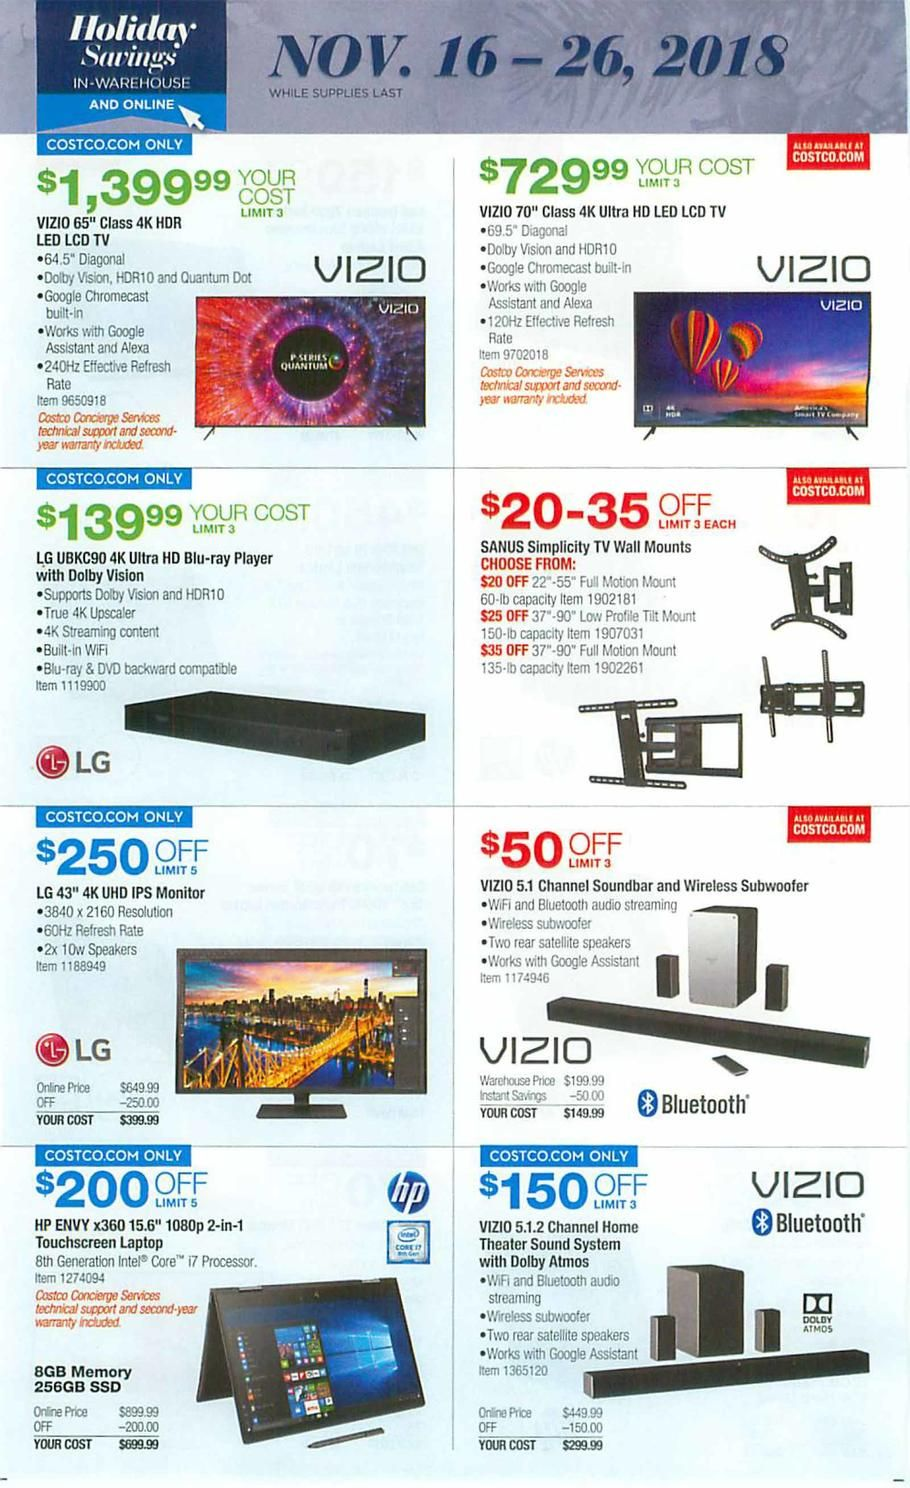 Costco Holiday Books 2018 Ads Scan, Deals and Sales